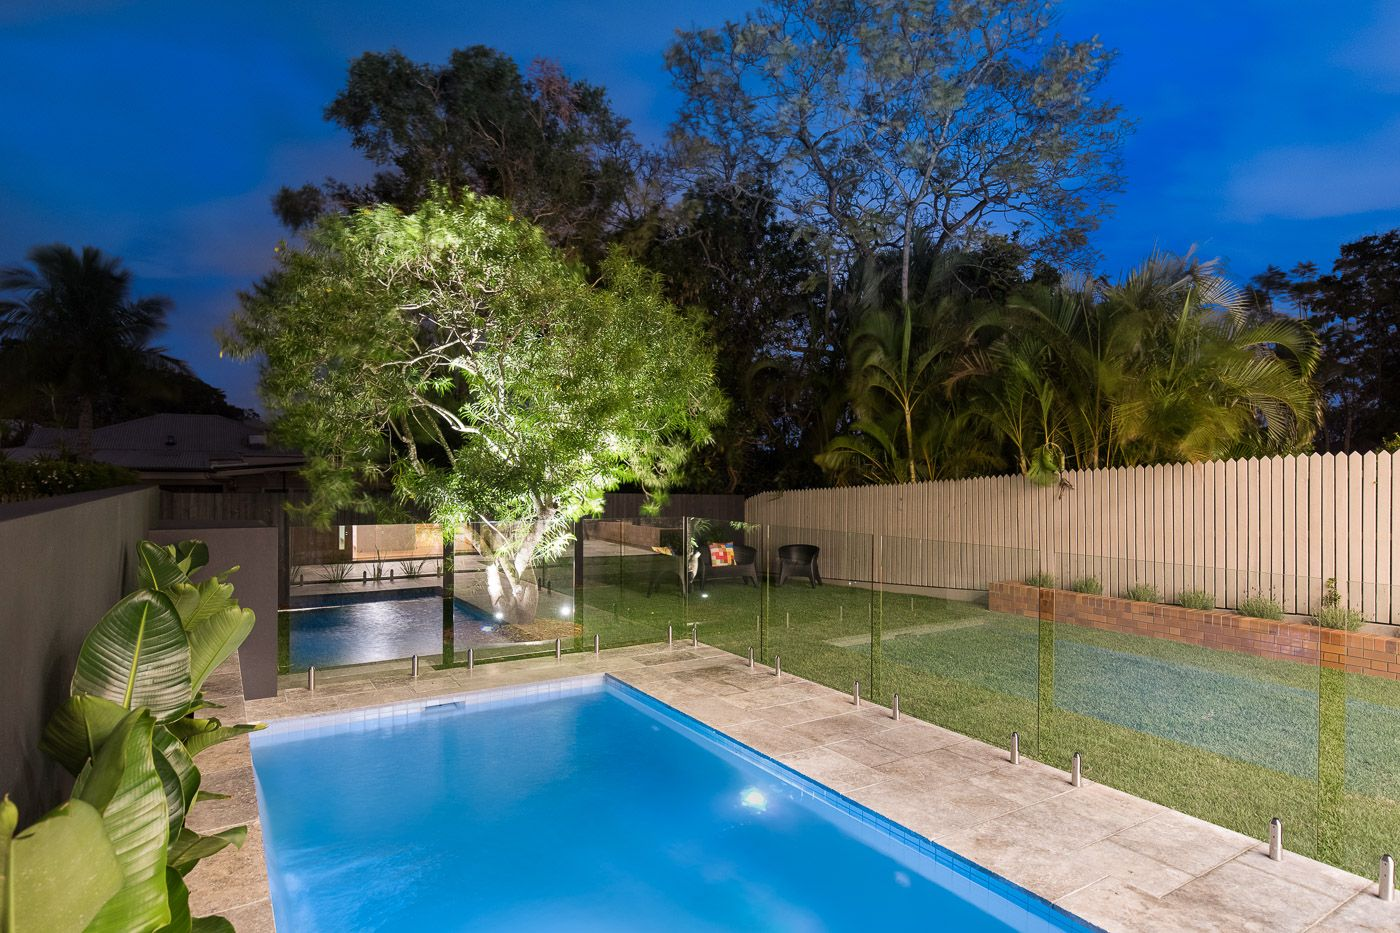 99 Payne Street Indooroopilly 4068